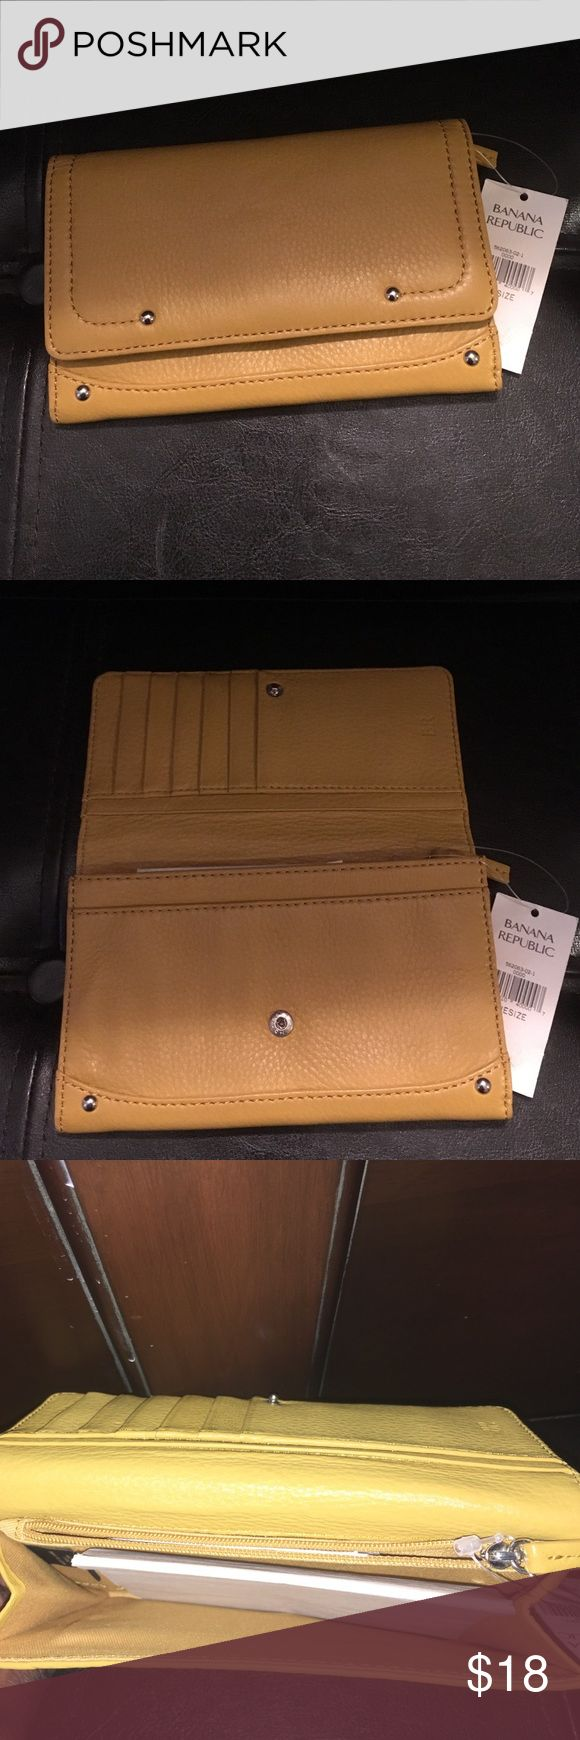 Banana Republic wallet Banana Republic wallet with inside zipper and credit card slots.  Never used. Banana Republic Bags Wallets